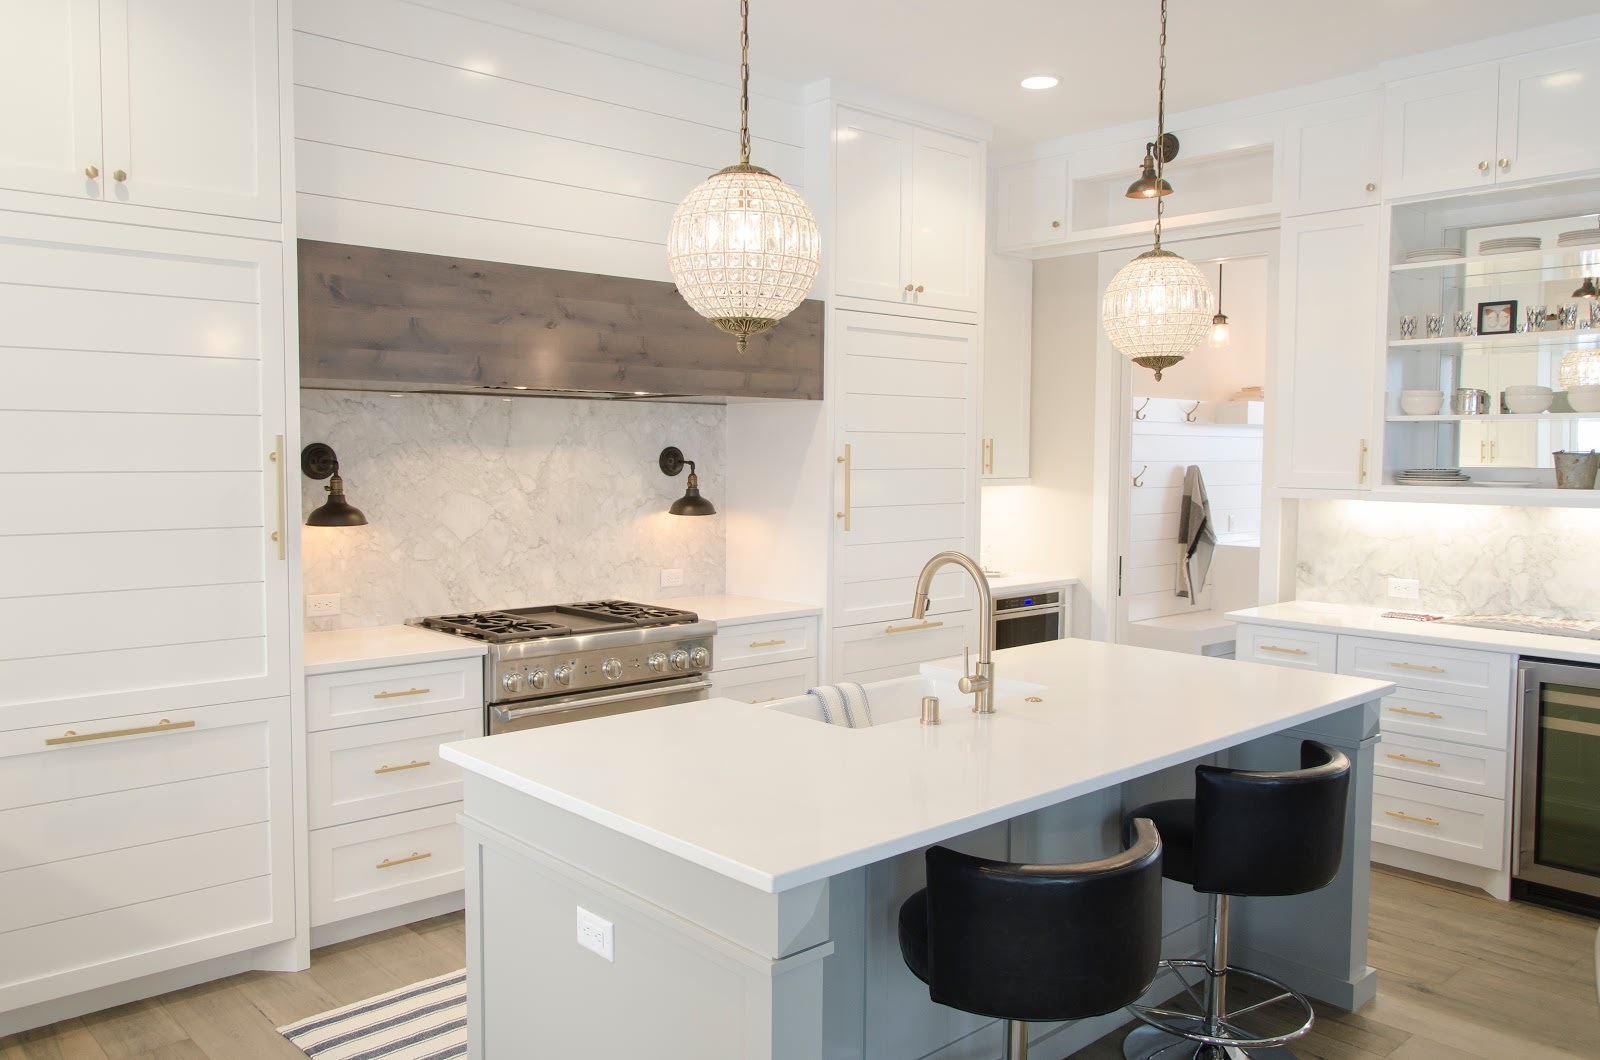 These Are The 5 Residential Design Trends We're Watching For 2019